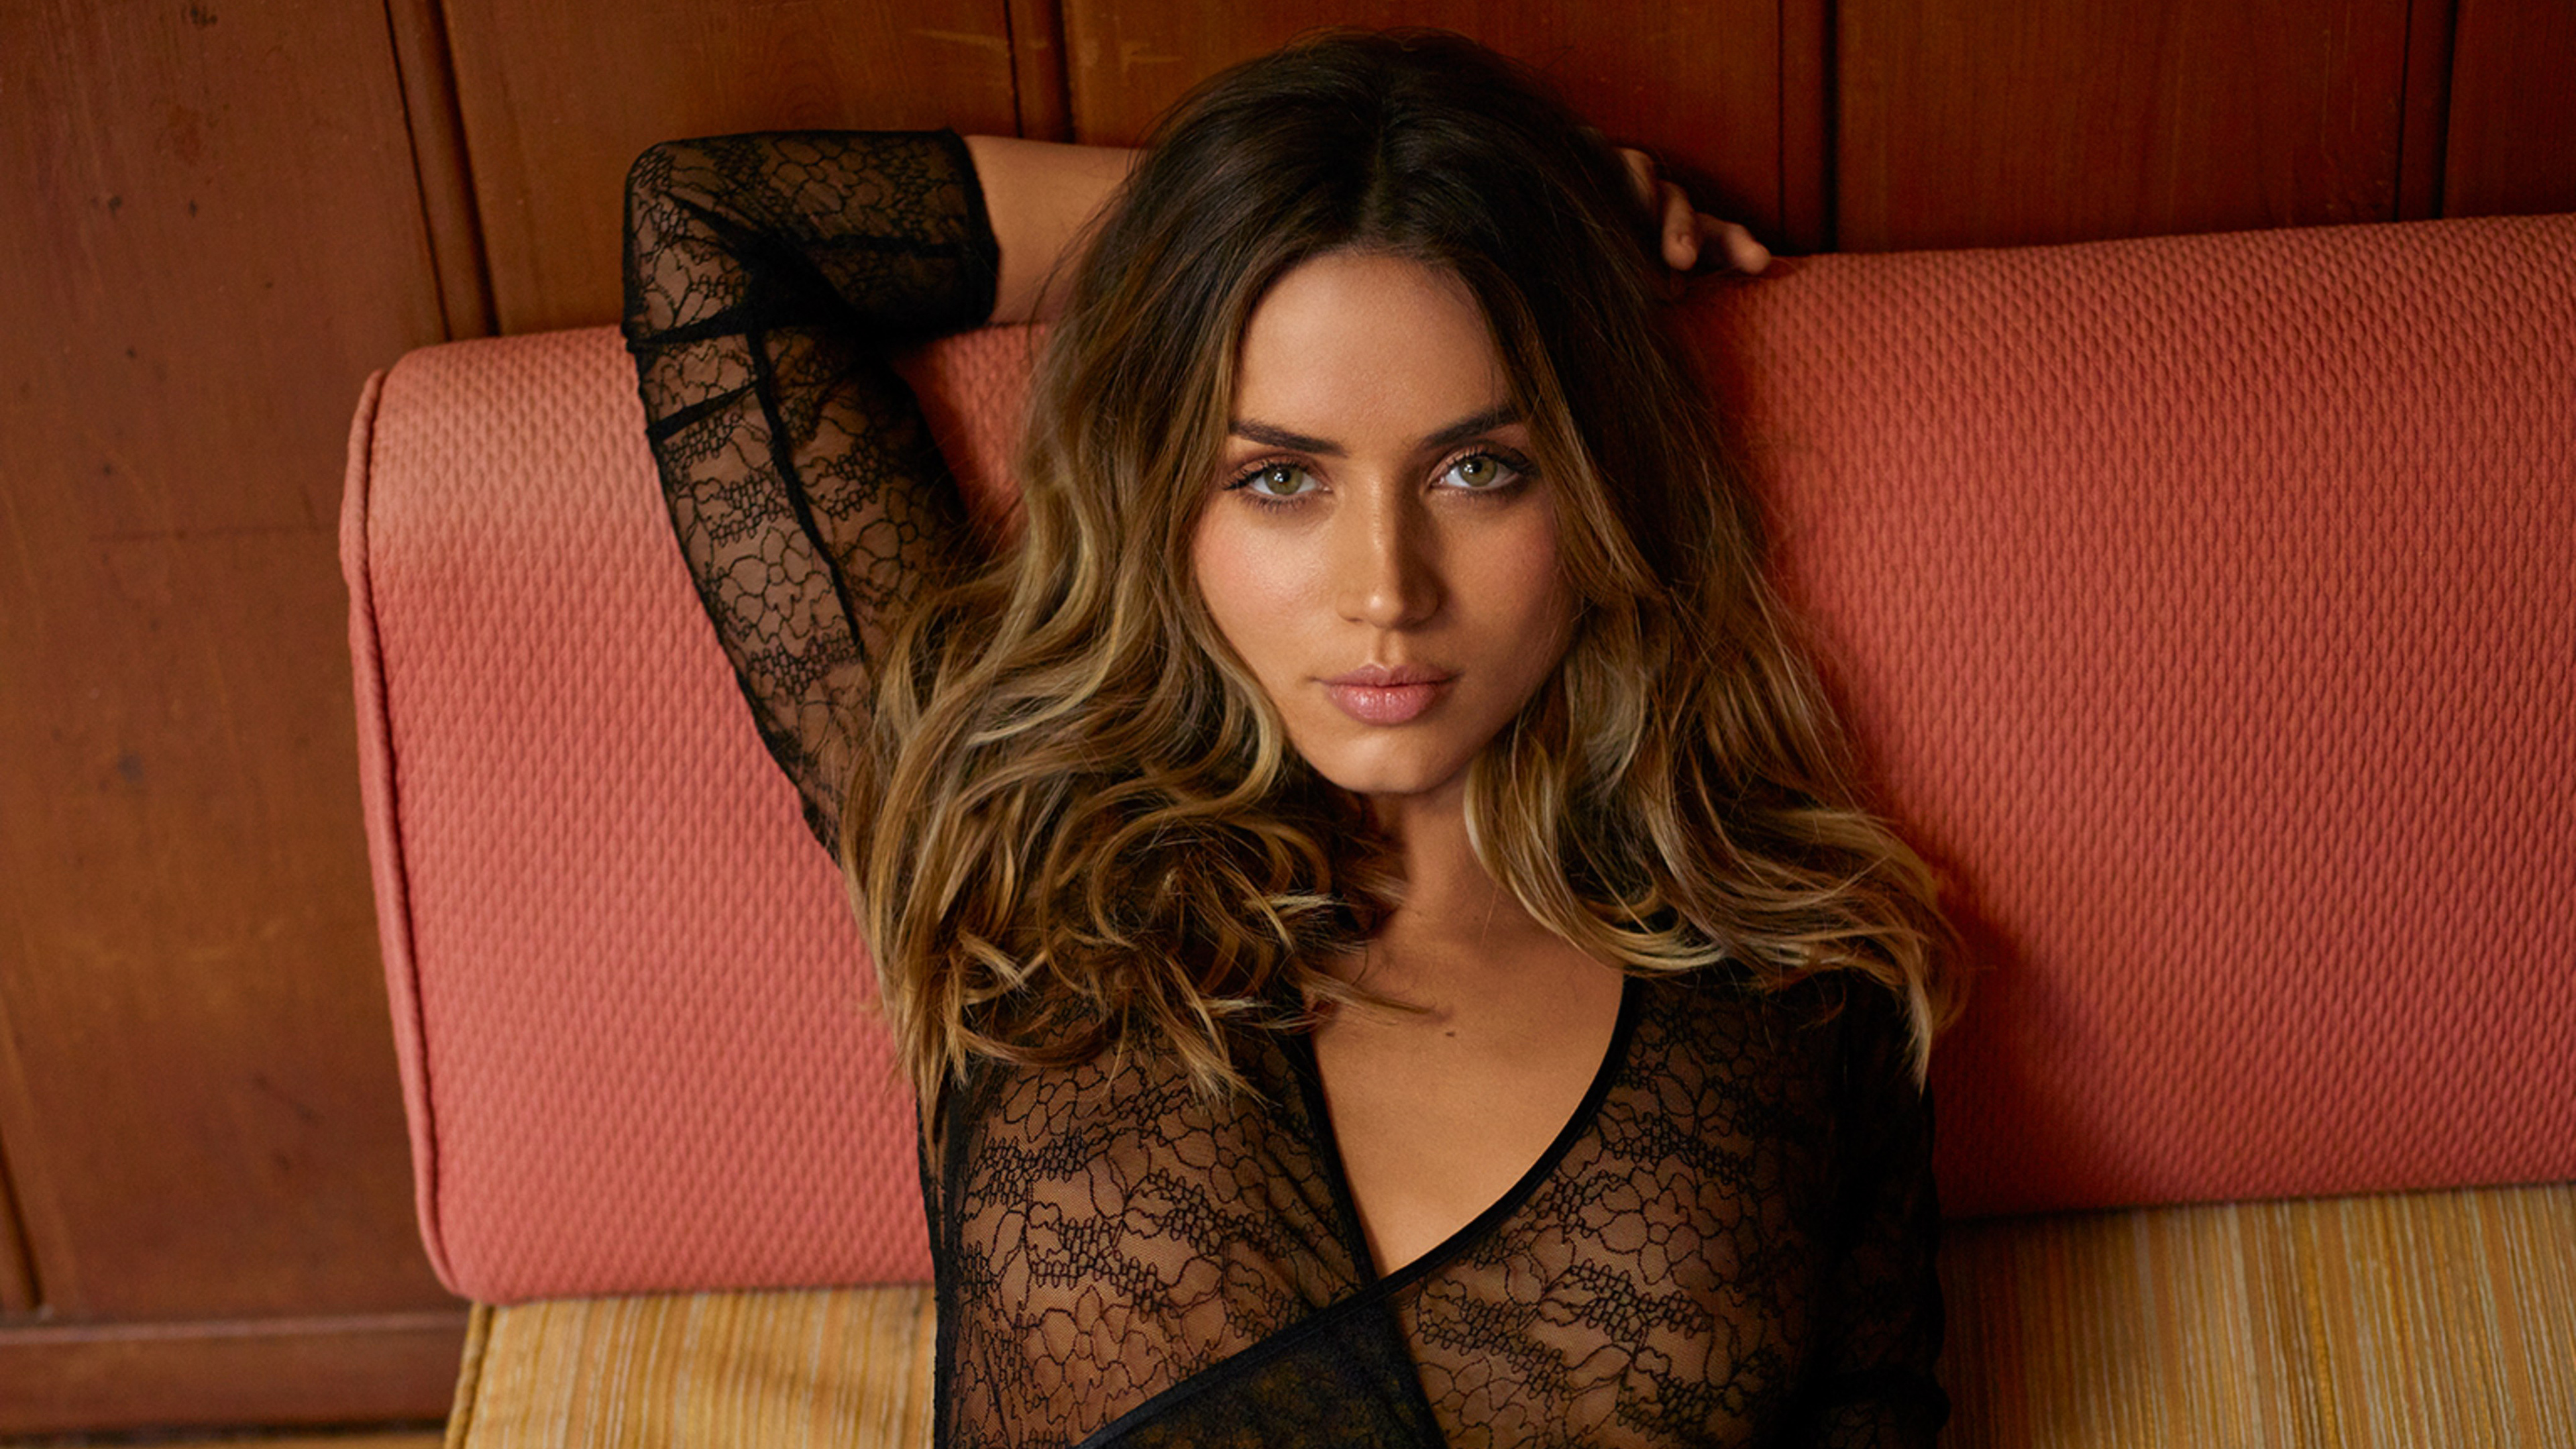 ana de armas 2019 4k 1553073728 - Ana De Armas 2019 4k - hd-wallpapers, girls wallpapers, celebrities wallpapers, ana de armas wallpapers, 4k-wallpapers